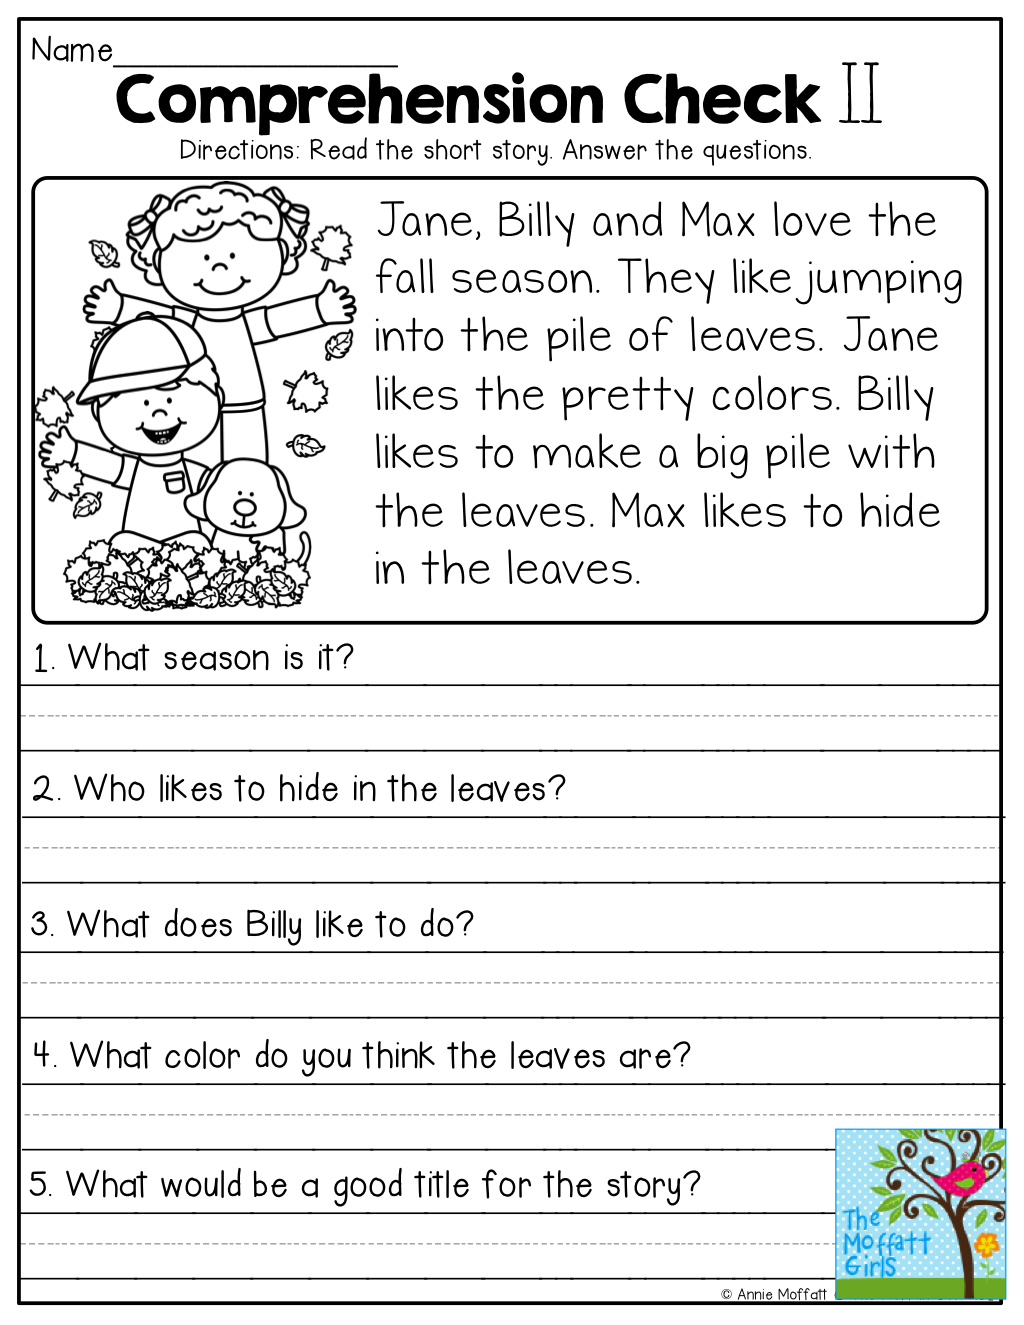 Worksheet Reading Comprehension For Grade 1 With Questions comprehension checks and so many more useful printables best of read the simple story answer questions tons great to help with grade level skills